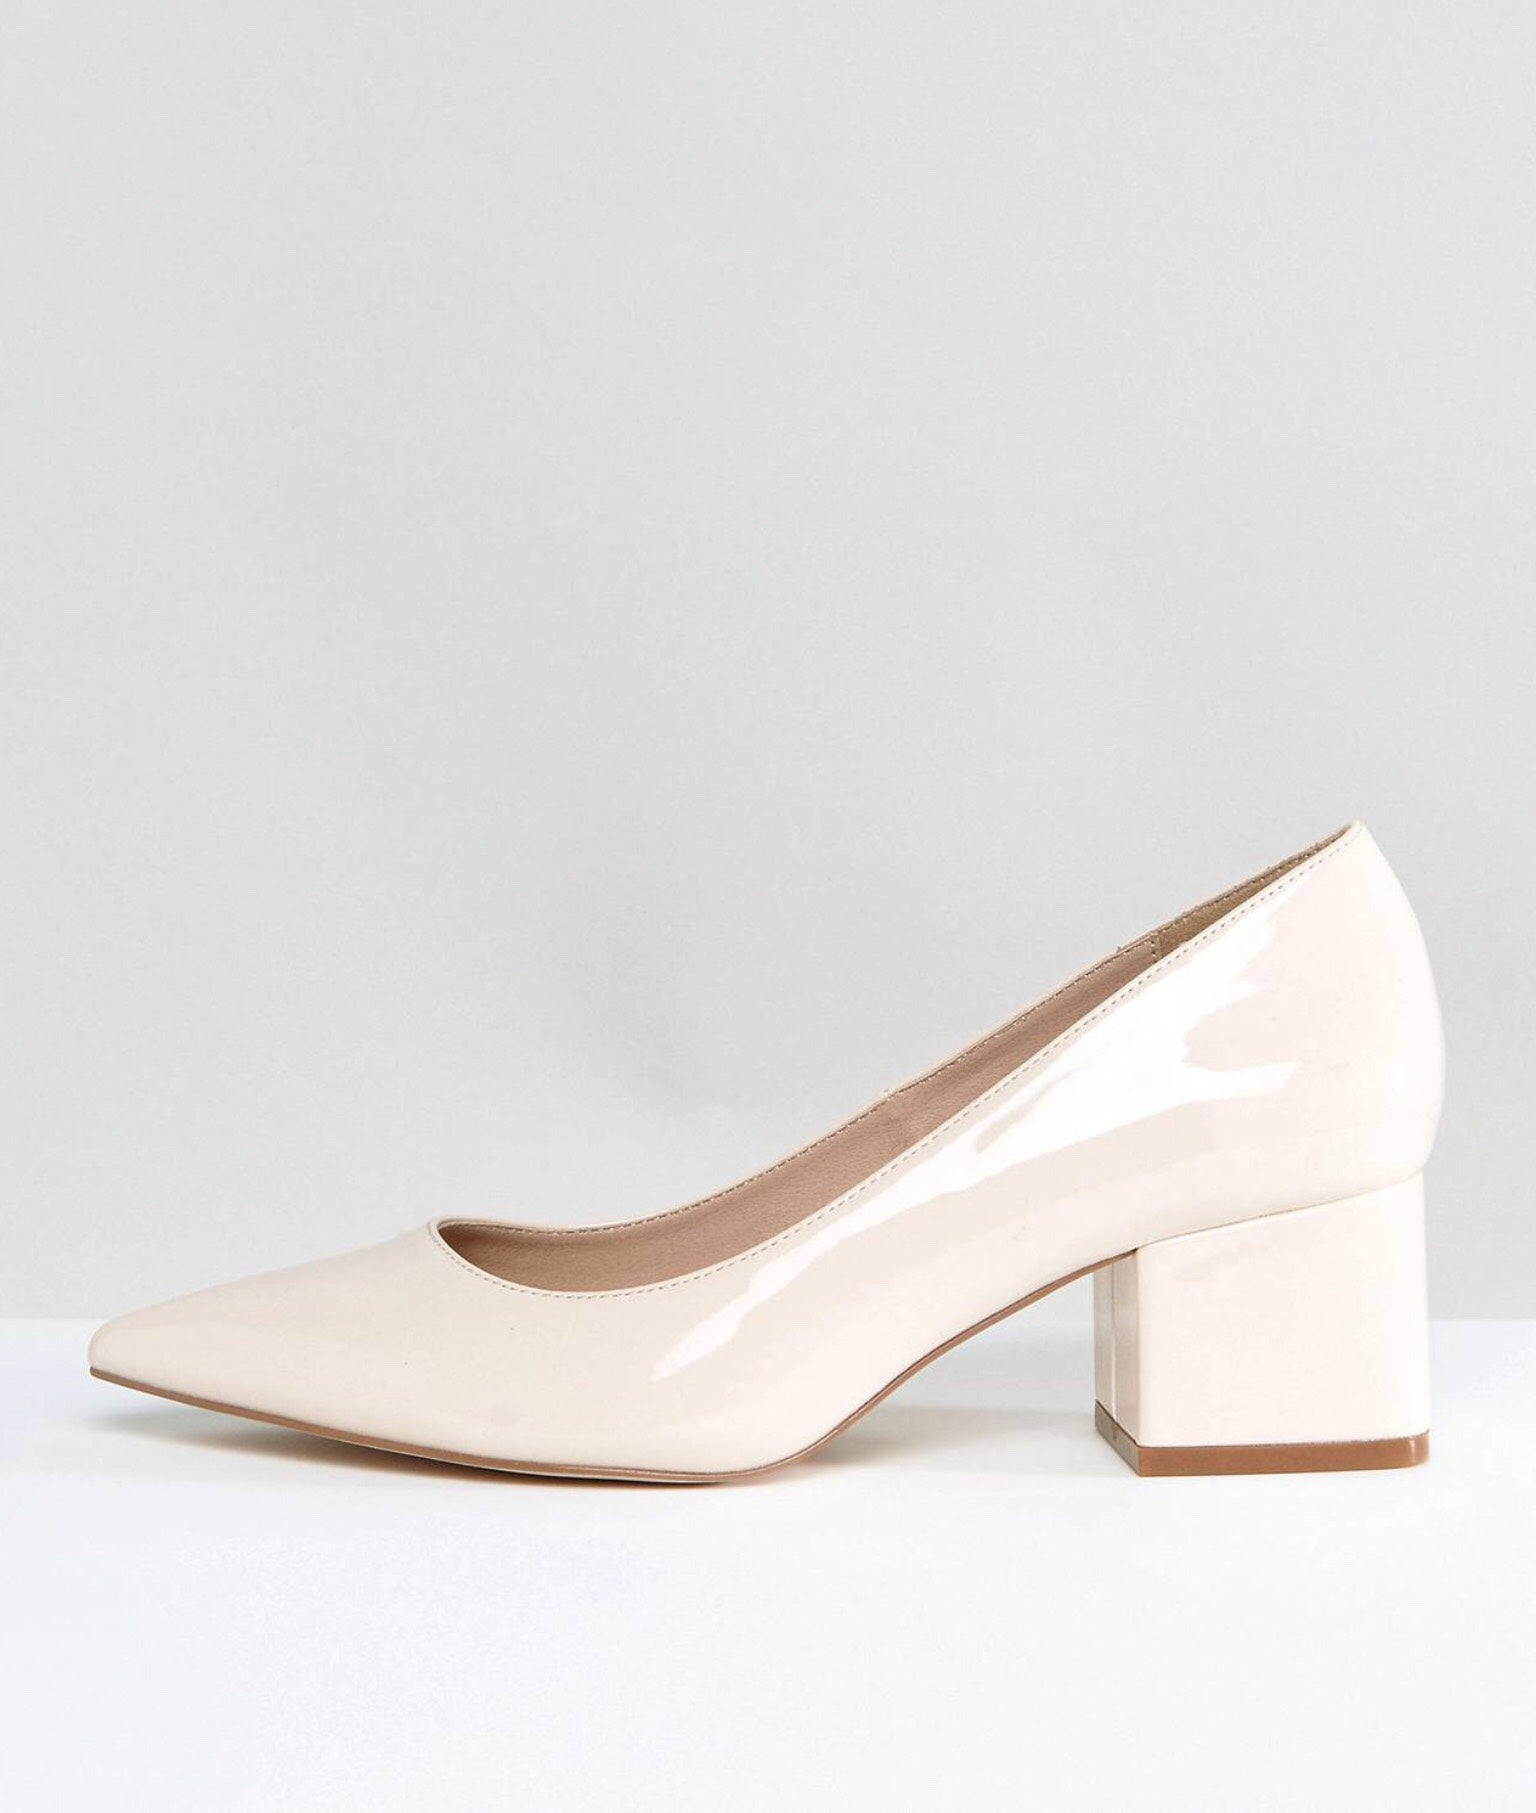 ASOS BIEGE PATENT LOW HEELS SHOES